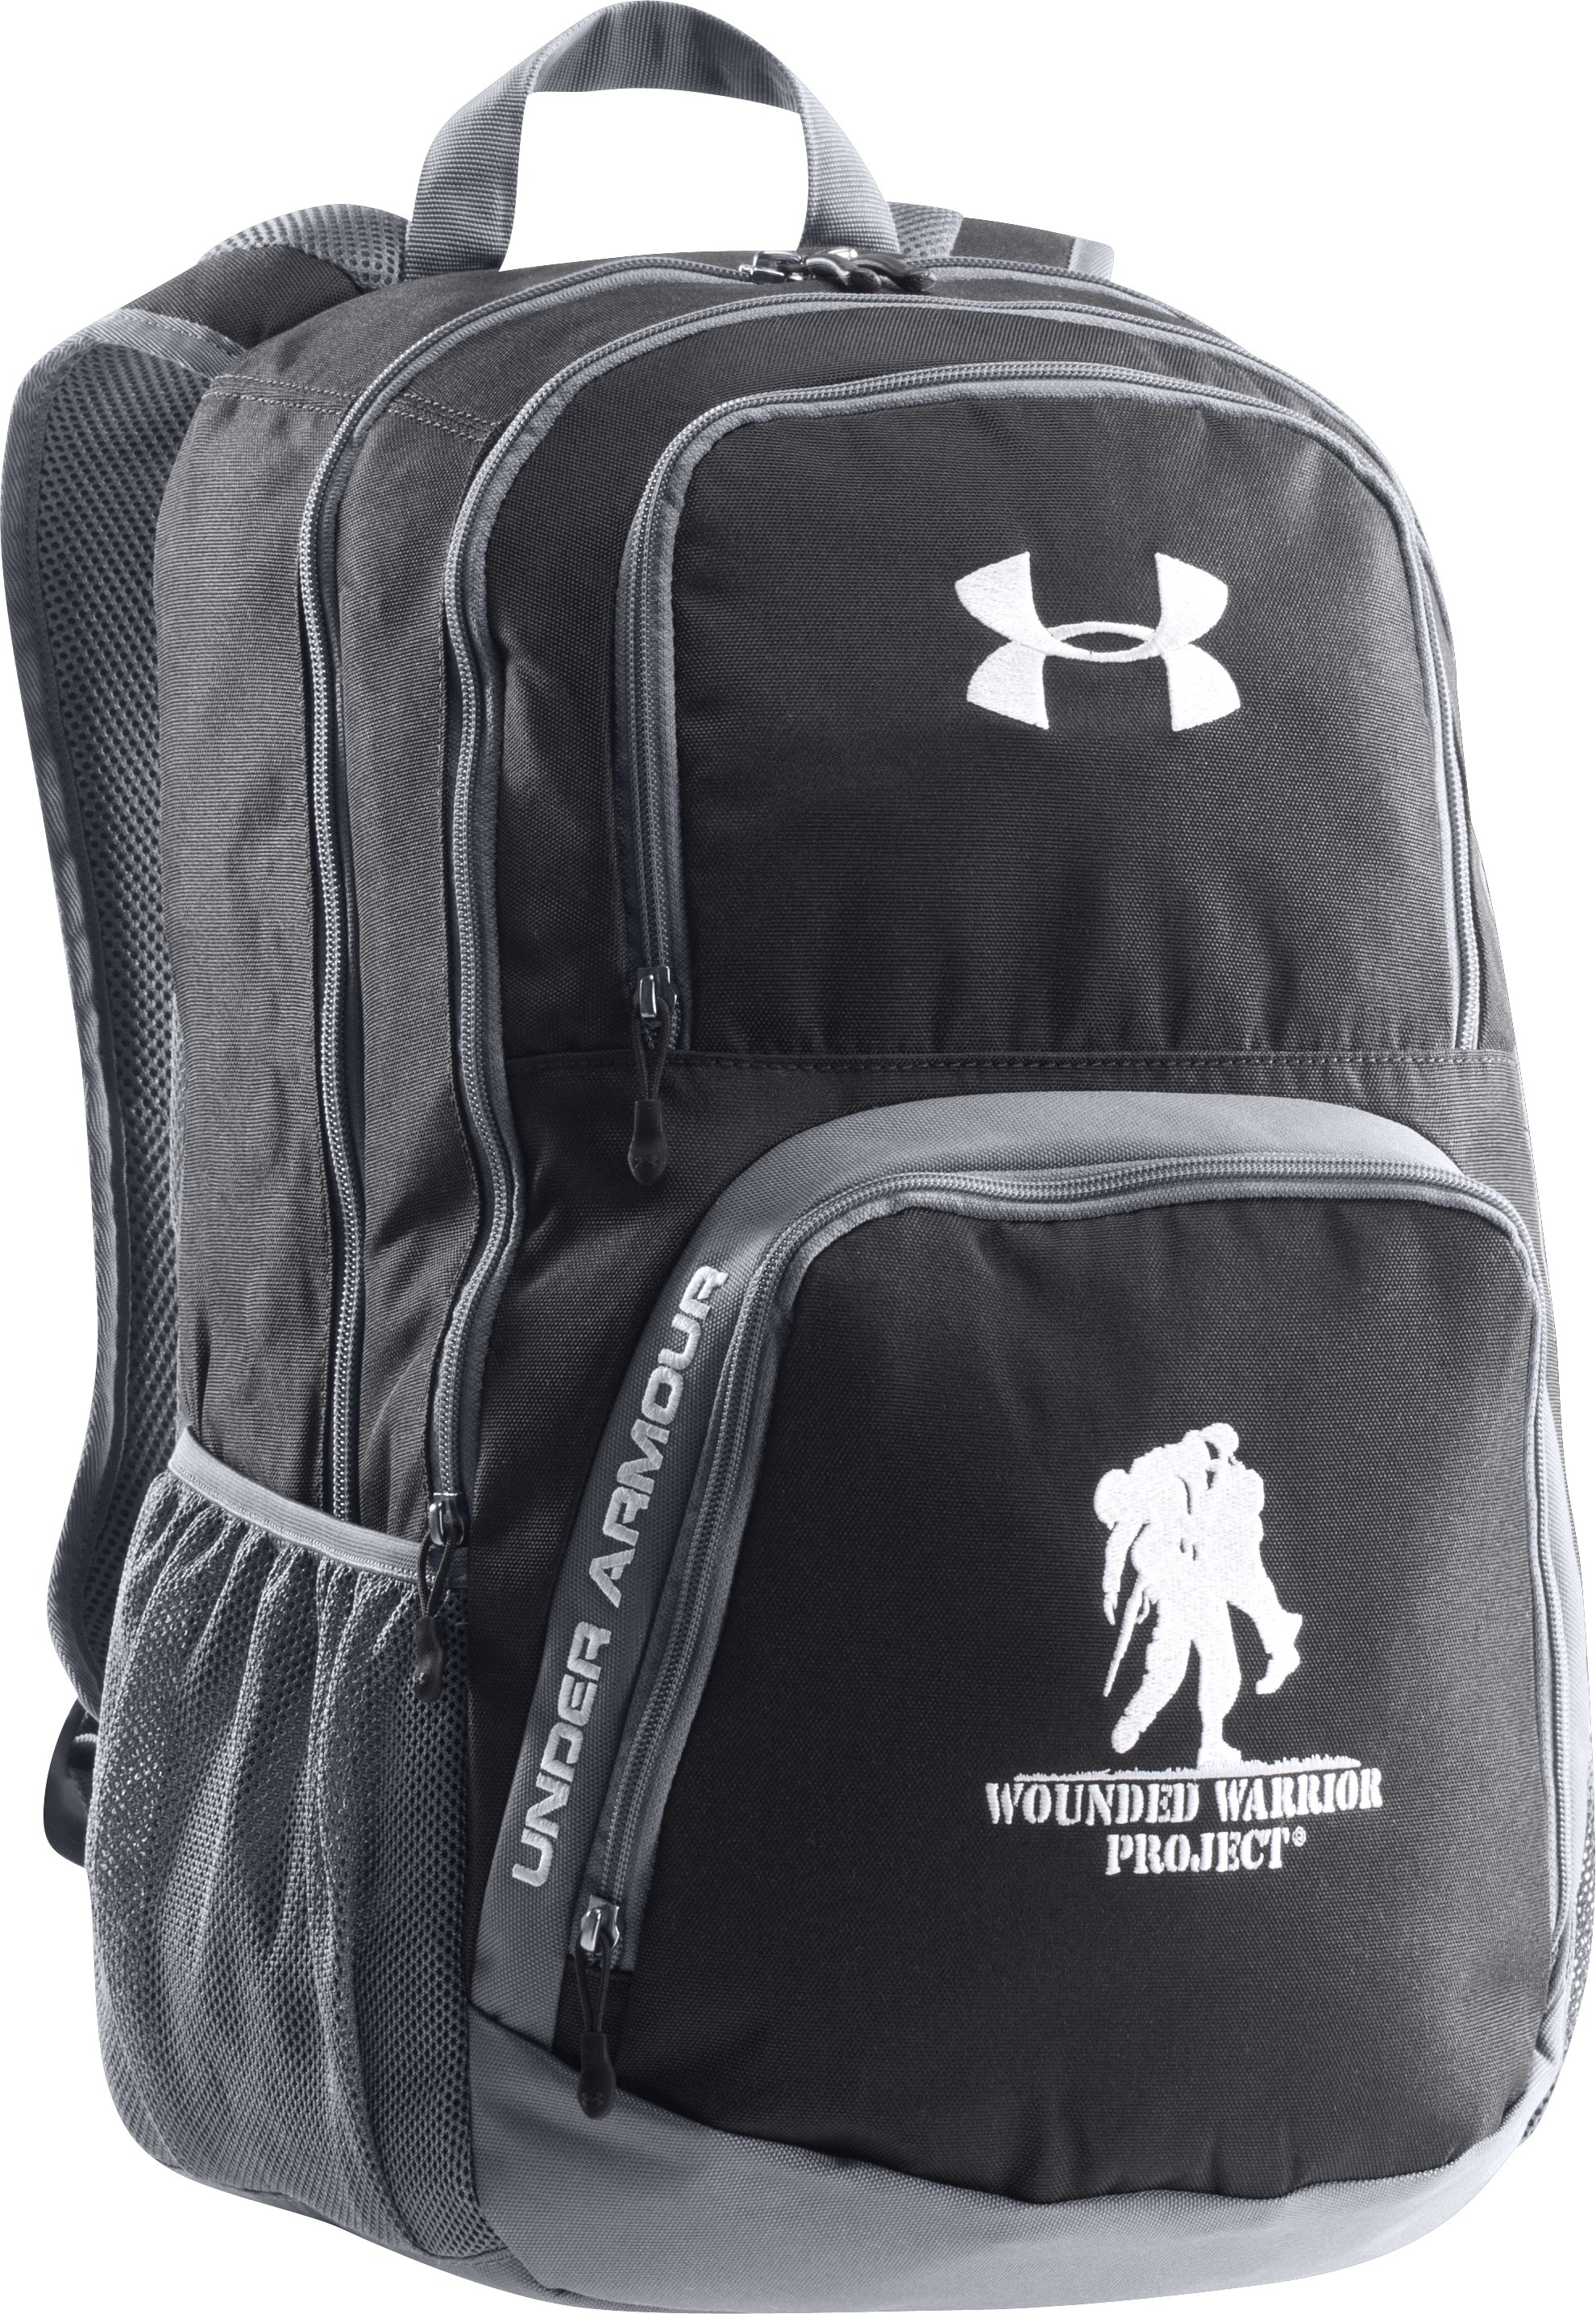 WWP Challenge Backpack Gift, Black